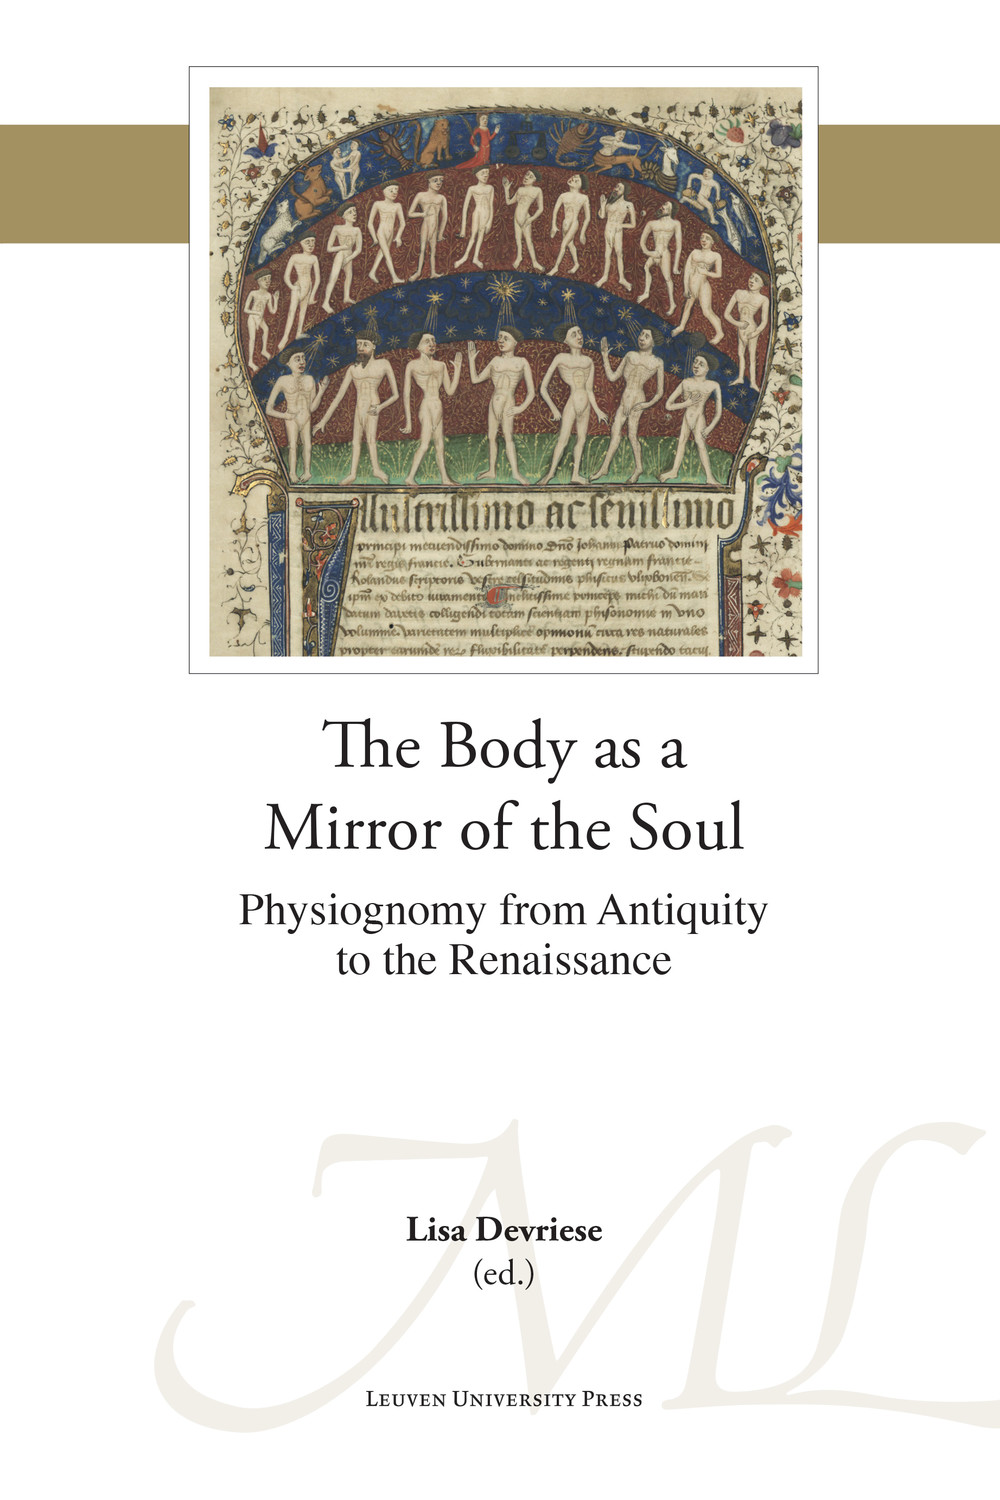 The Body as a Mirror of the Soul